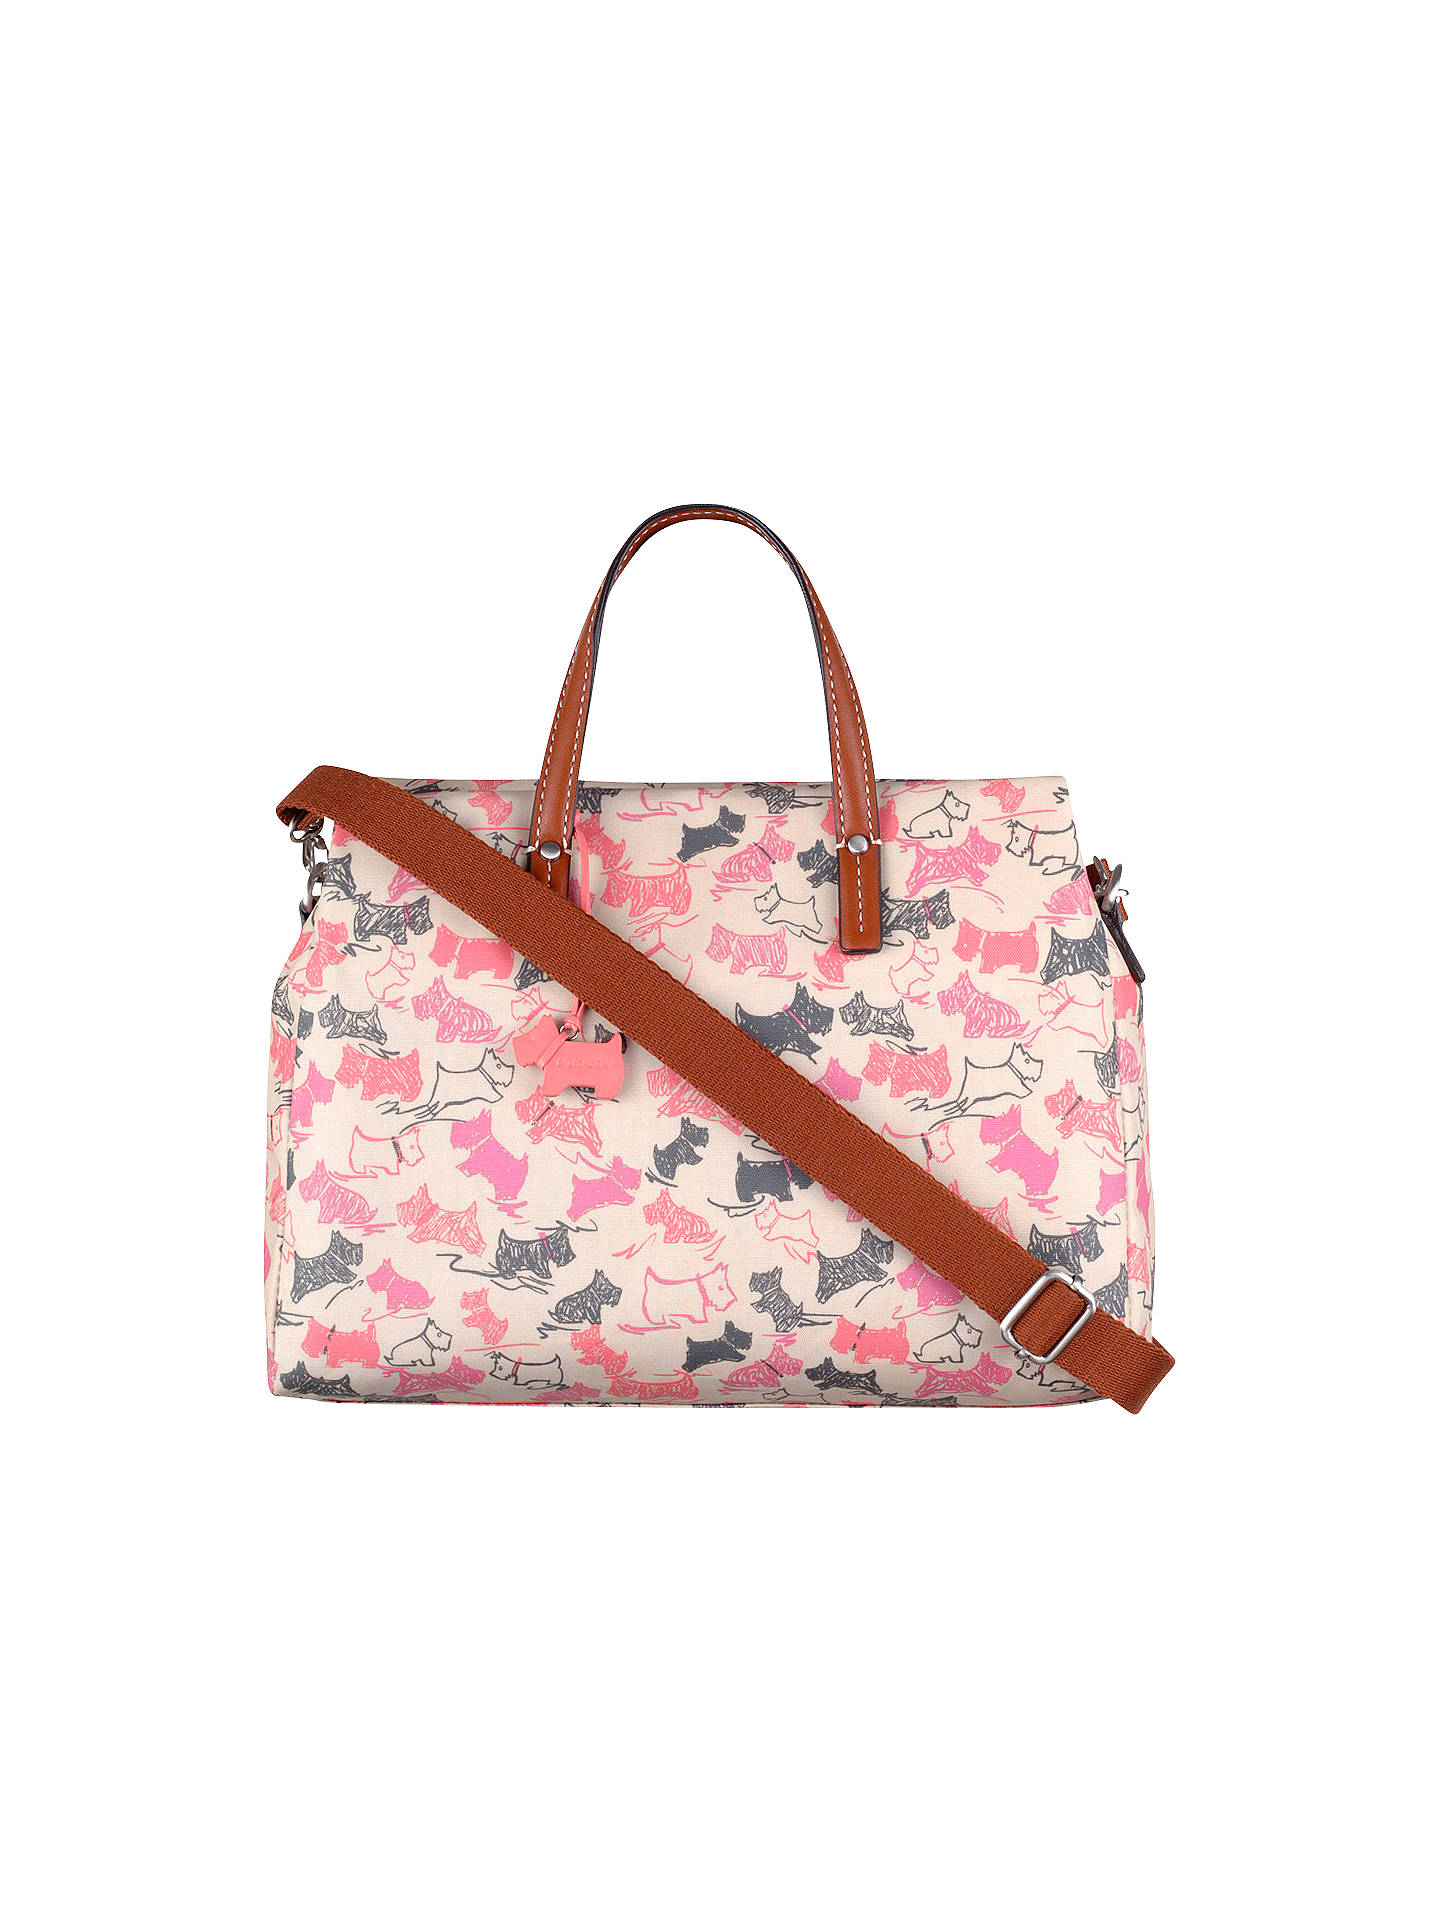 85beeb6ceb Buy Radley Doodle Dog Medium Grab Bag, Pink Online at johnlewis.com ...